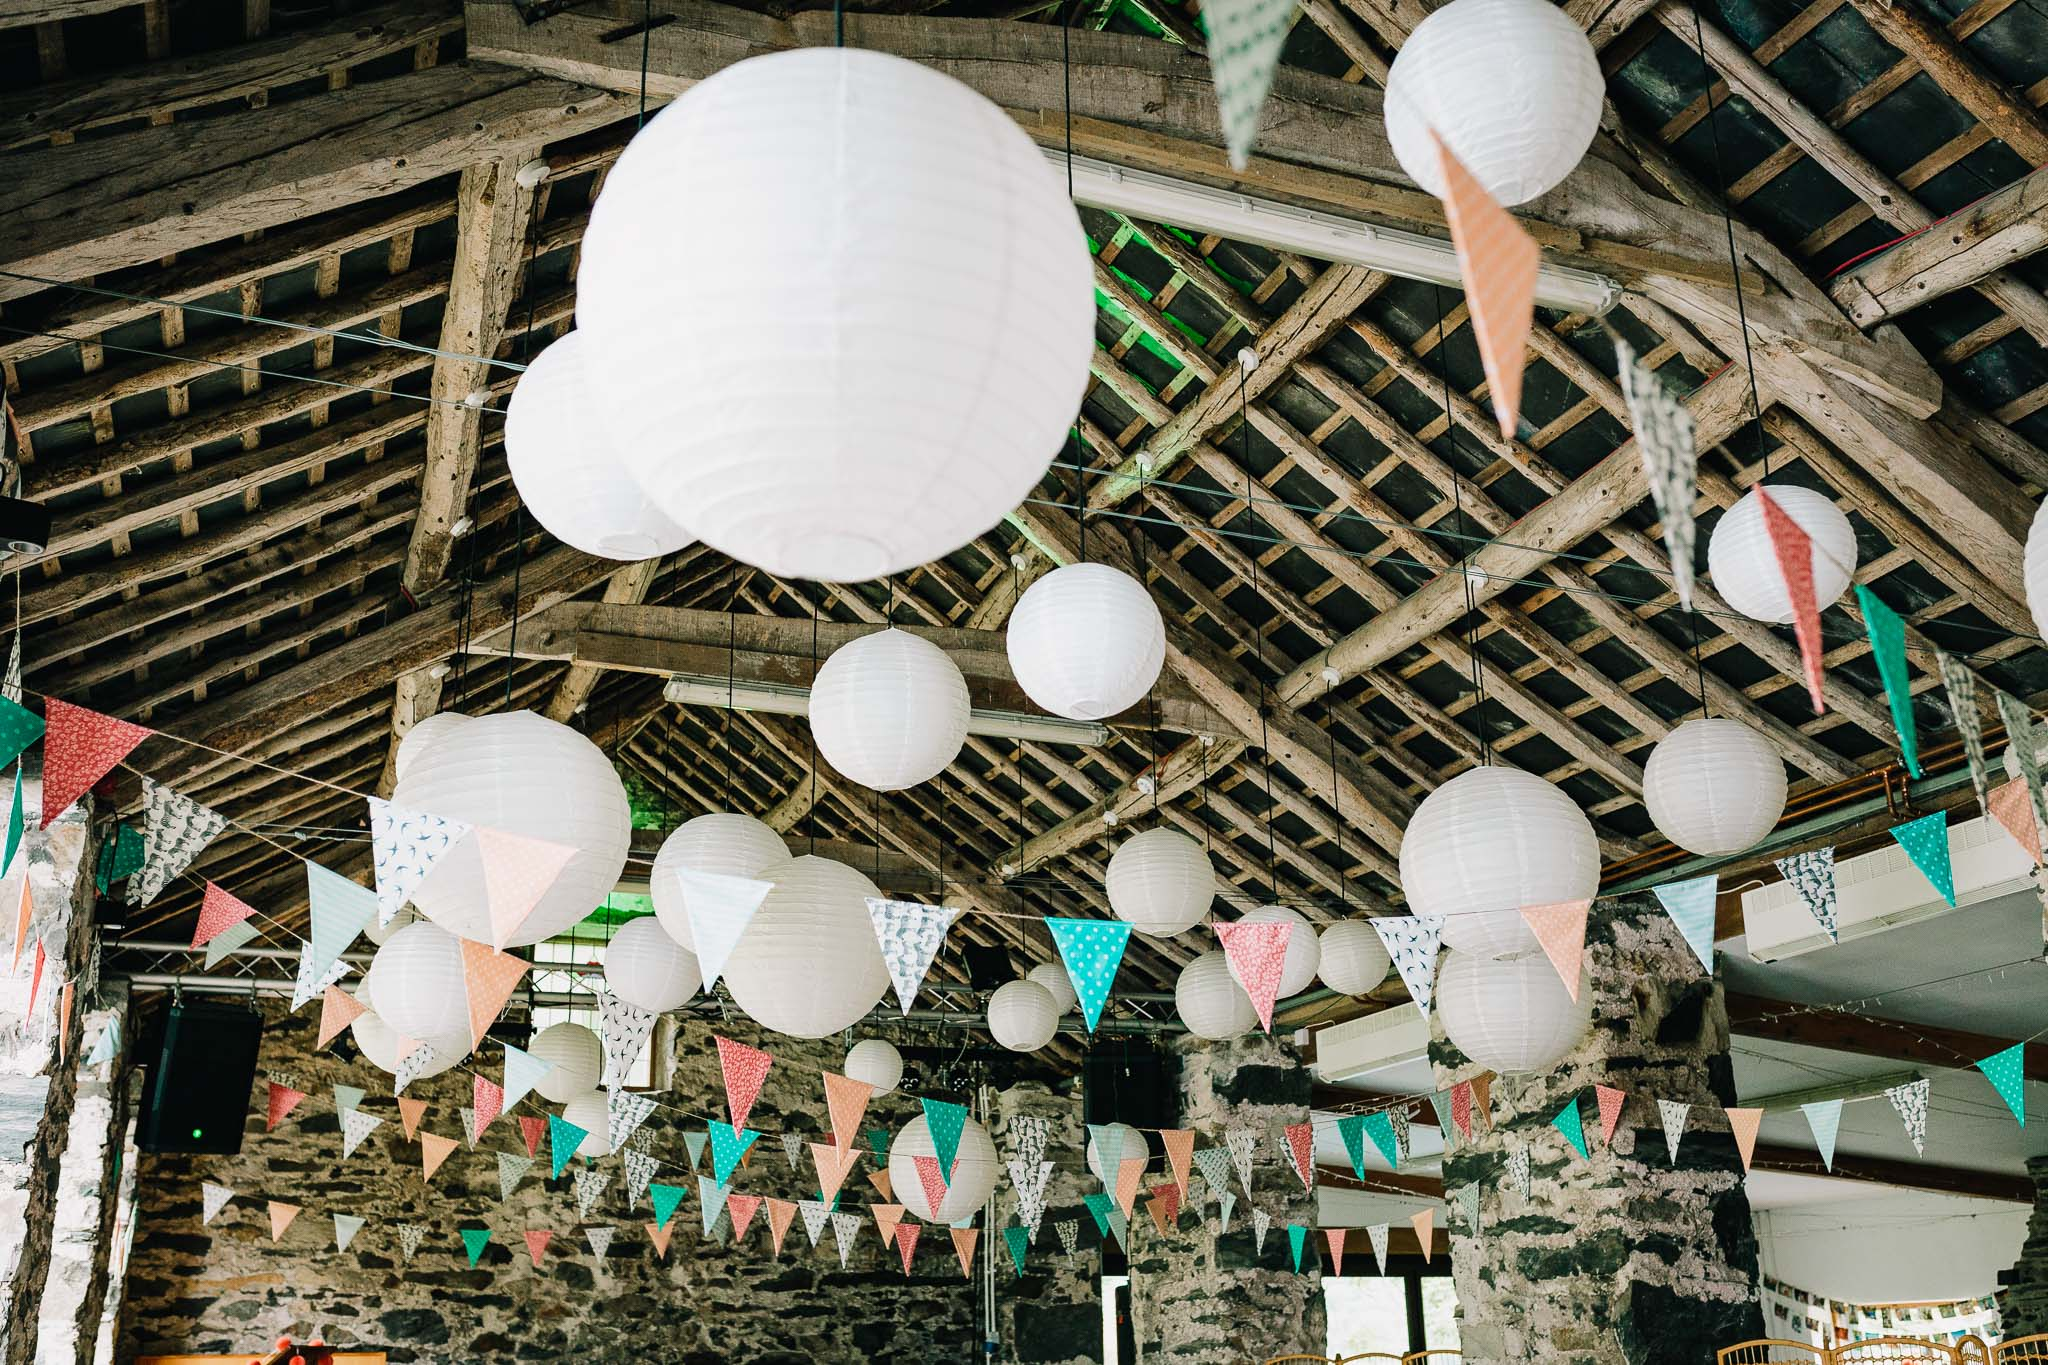 LANTERNS AND BUNTING HANGING UP IN NORTH WALES BARN